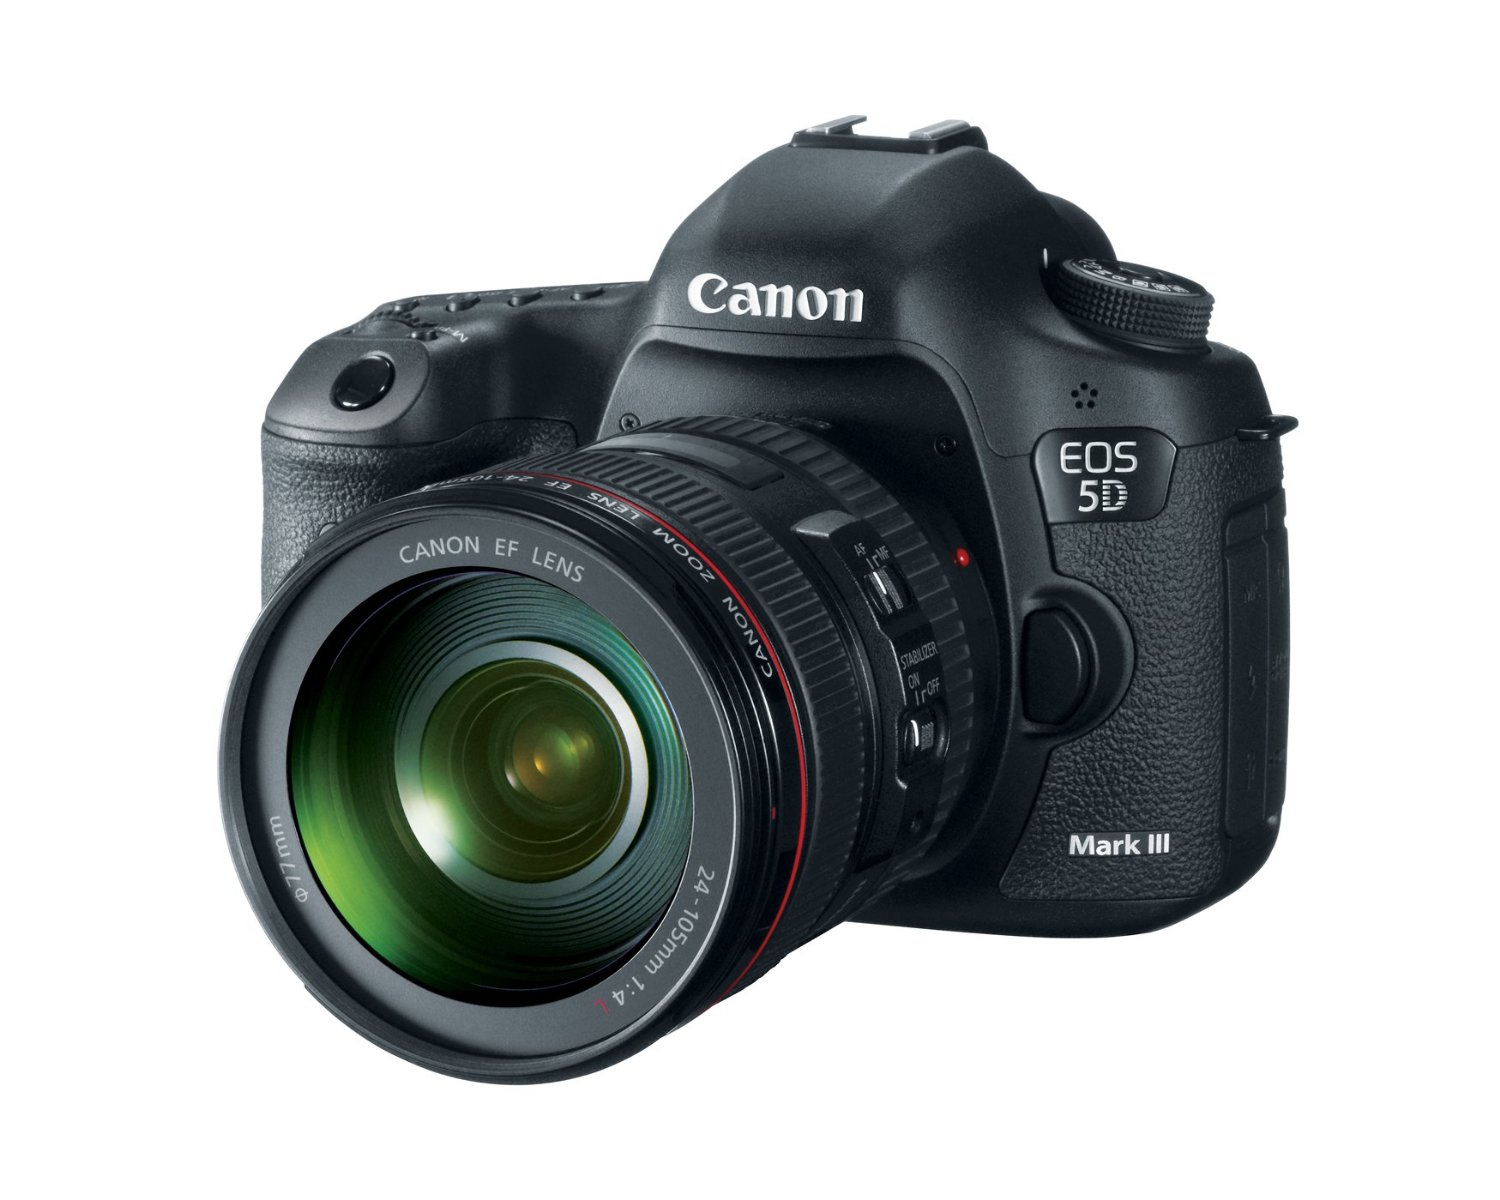 Canon EOS 5D Mark III w 24-105mm lens kit